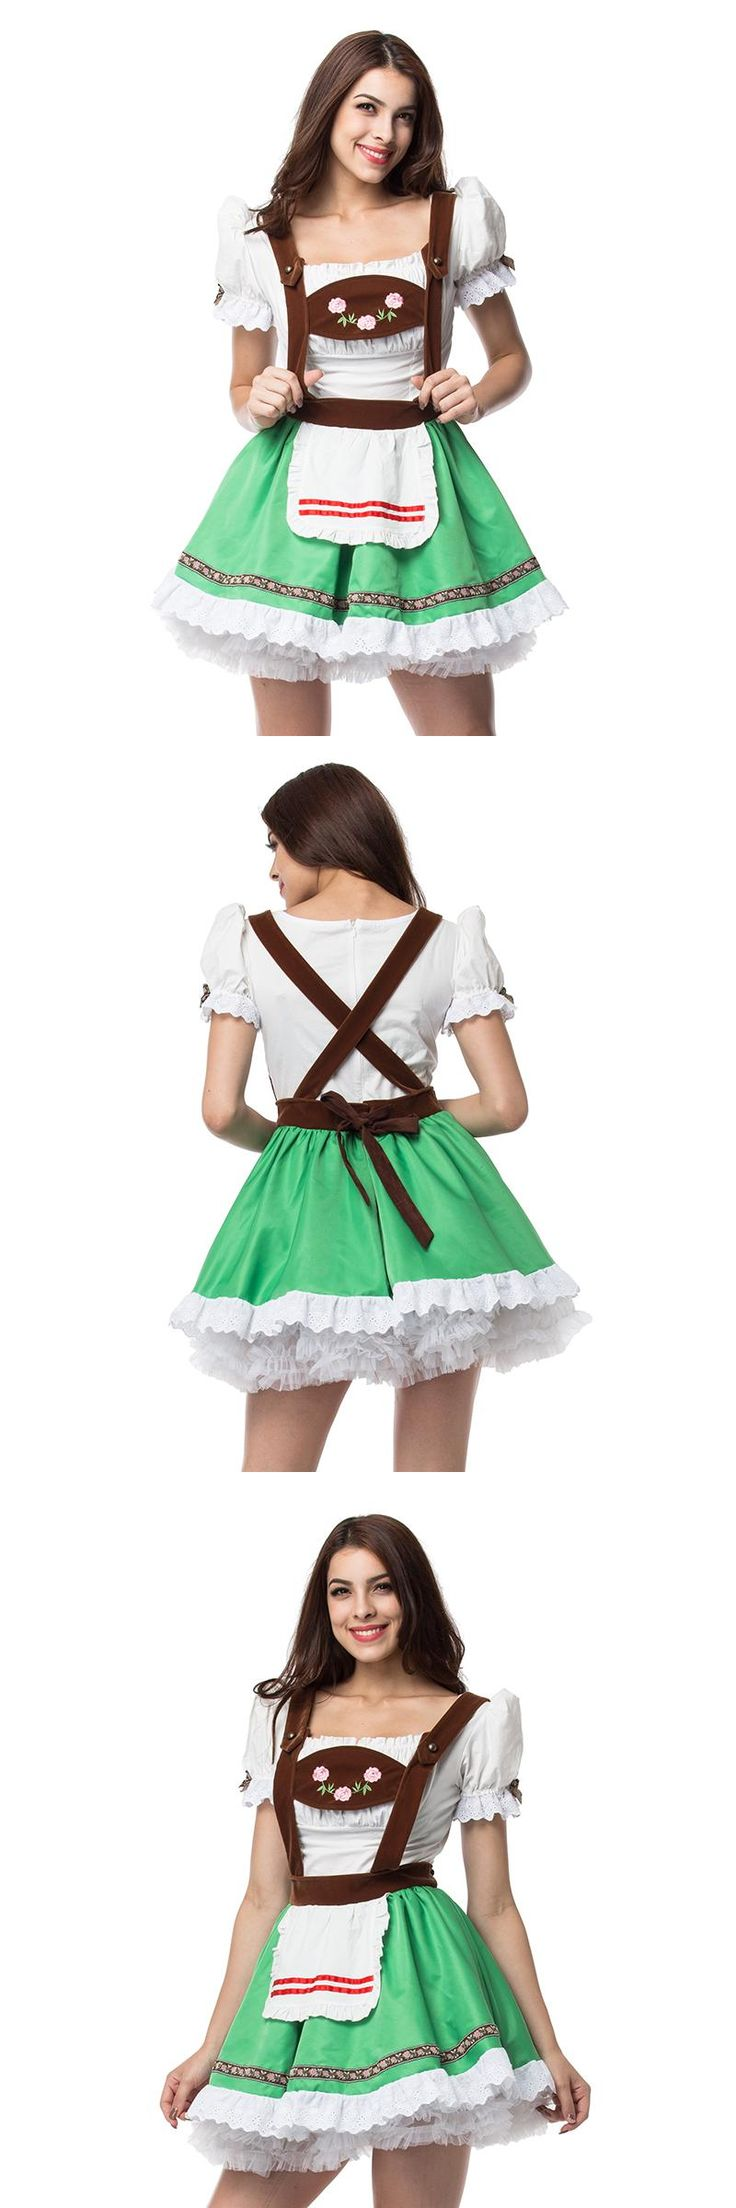 Maid Service Temptation Beer Girl Oktoberfest Costume German Wench Fancy Cosplay L15515